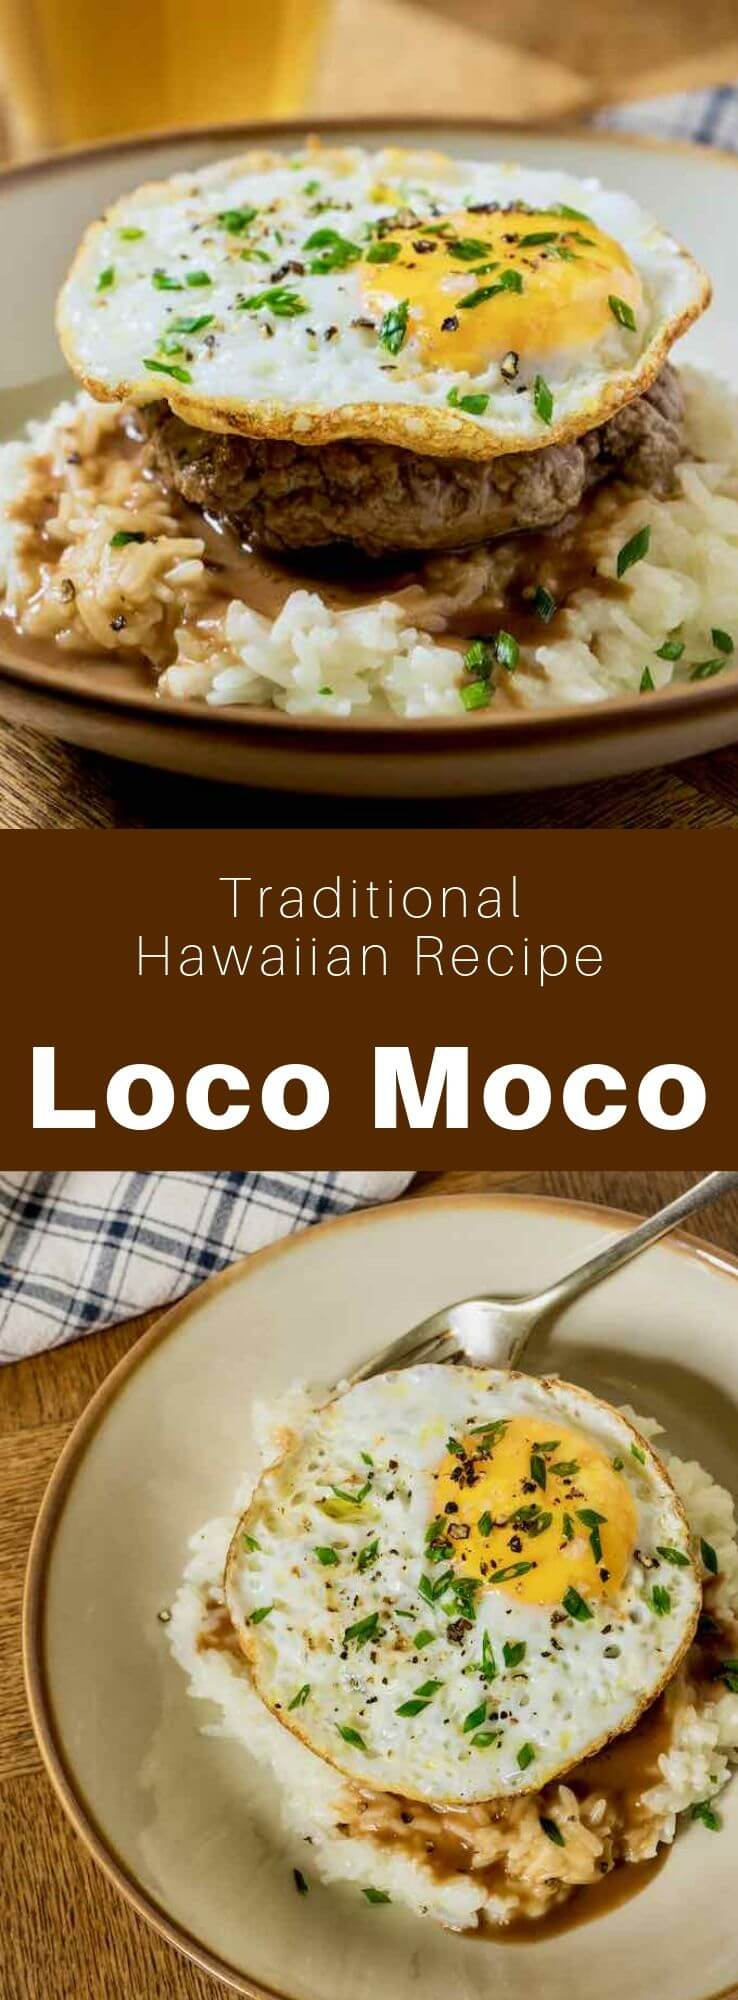 Loco moco is a traditional Hawaiian dish that is prepared with white rice topped with a hamburger patty, a fried egg and beef gravy. #Hawaii #HawaiianRecipe #HawaiianFood #HawaiianCuisine #WorldCuisine #196flavors